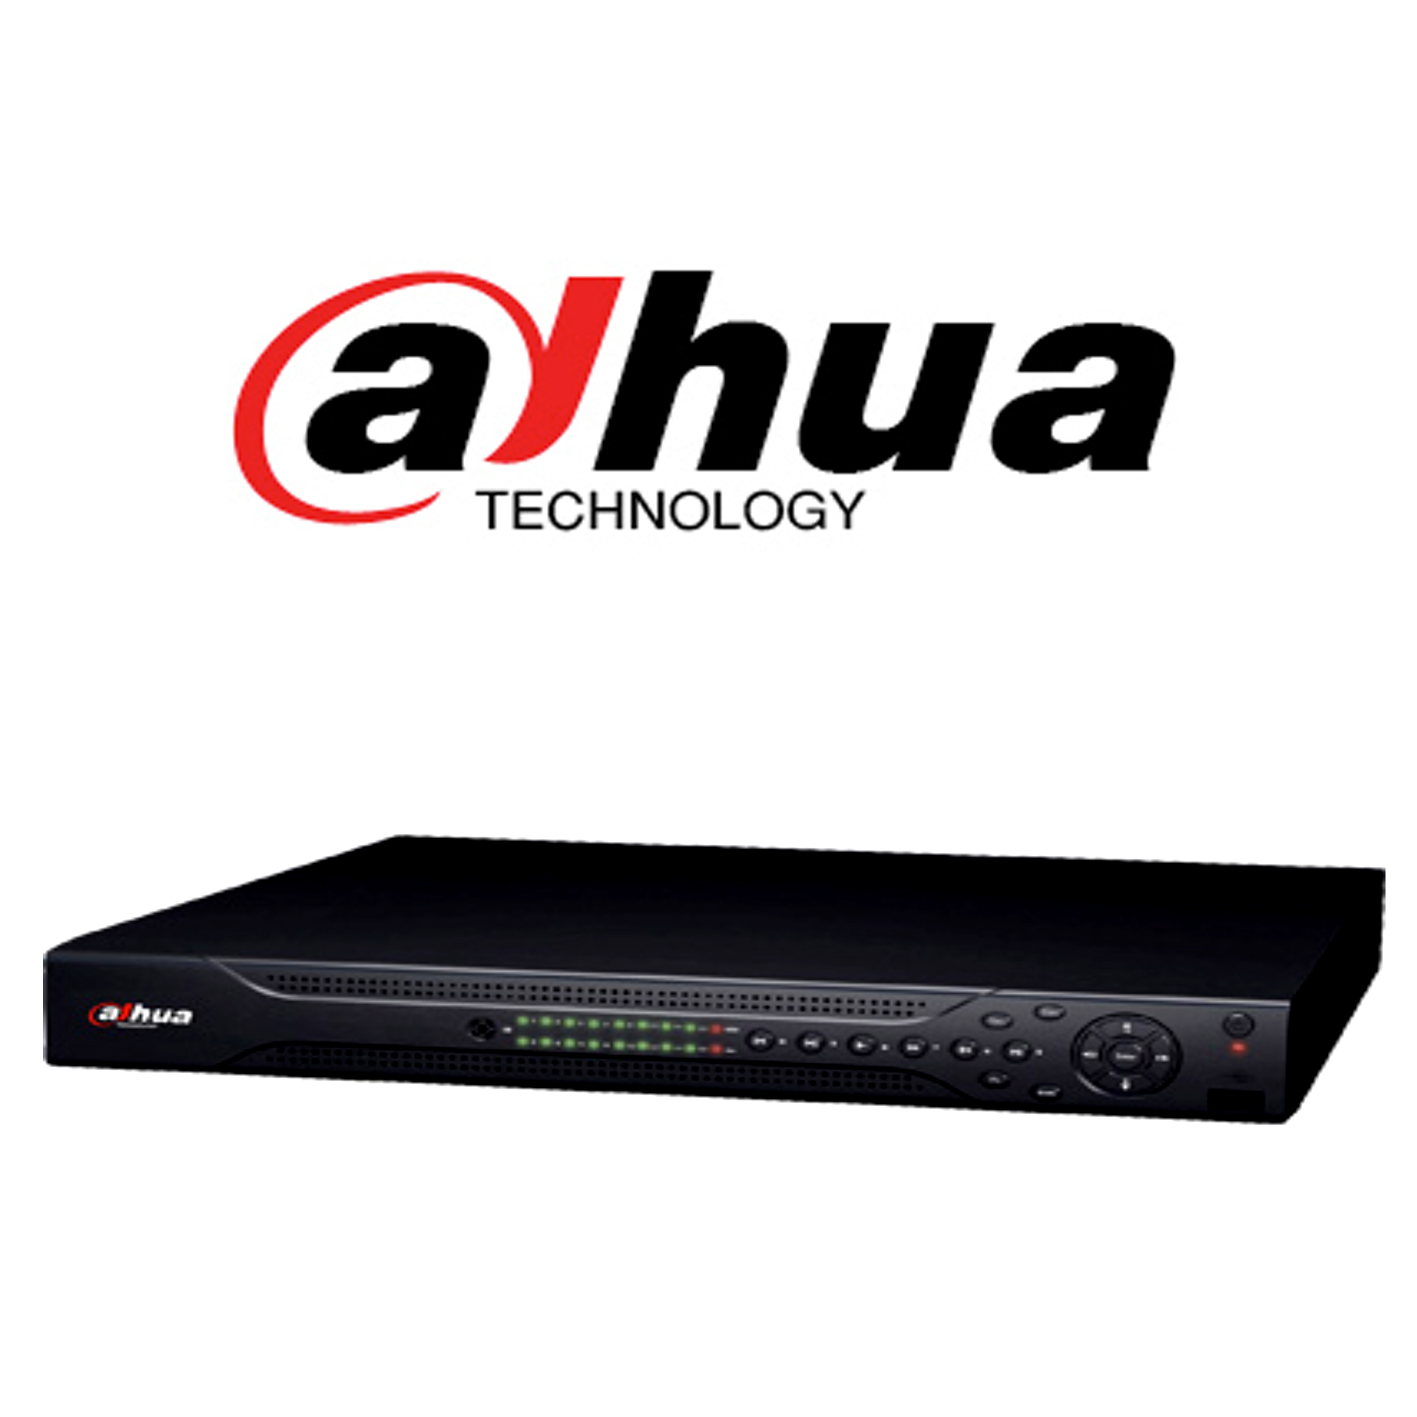 camera dahua 1.0 - Dahua 16ch standalone DVR 400fps - Camera 1.0 Dahua